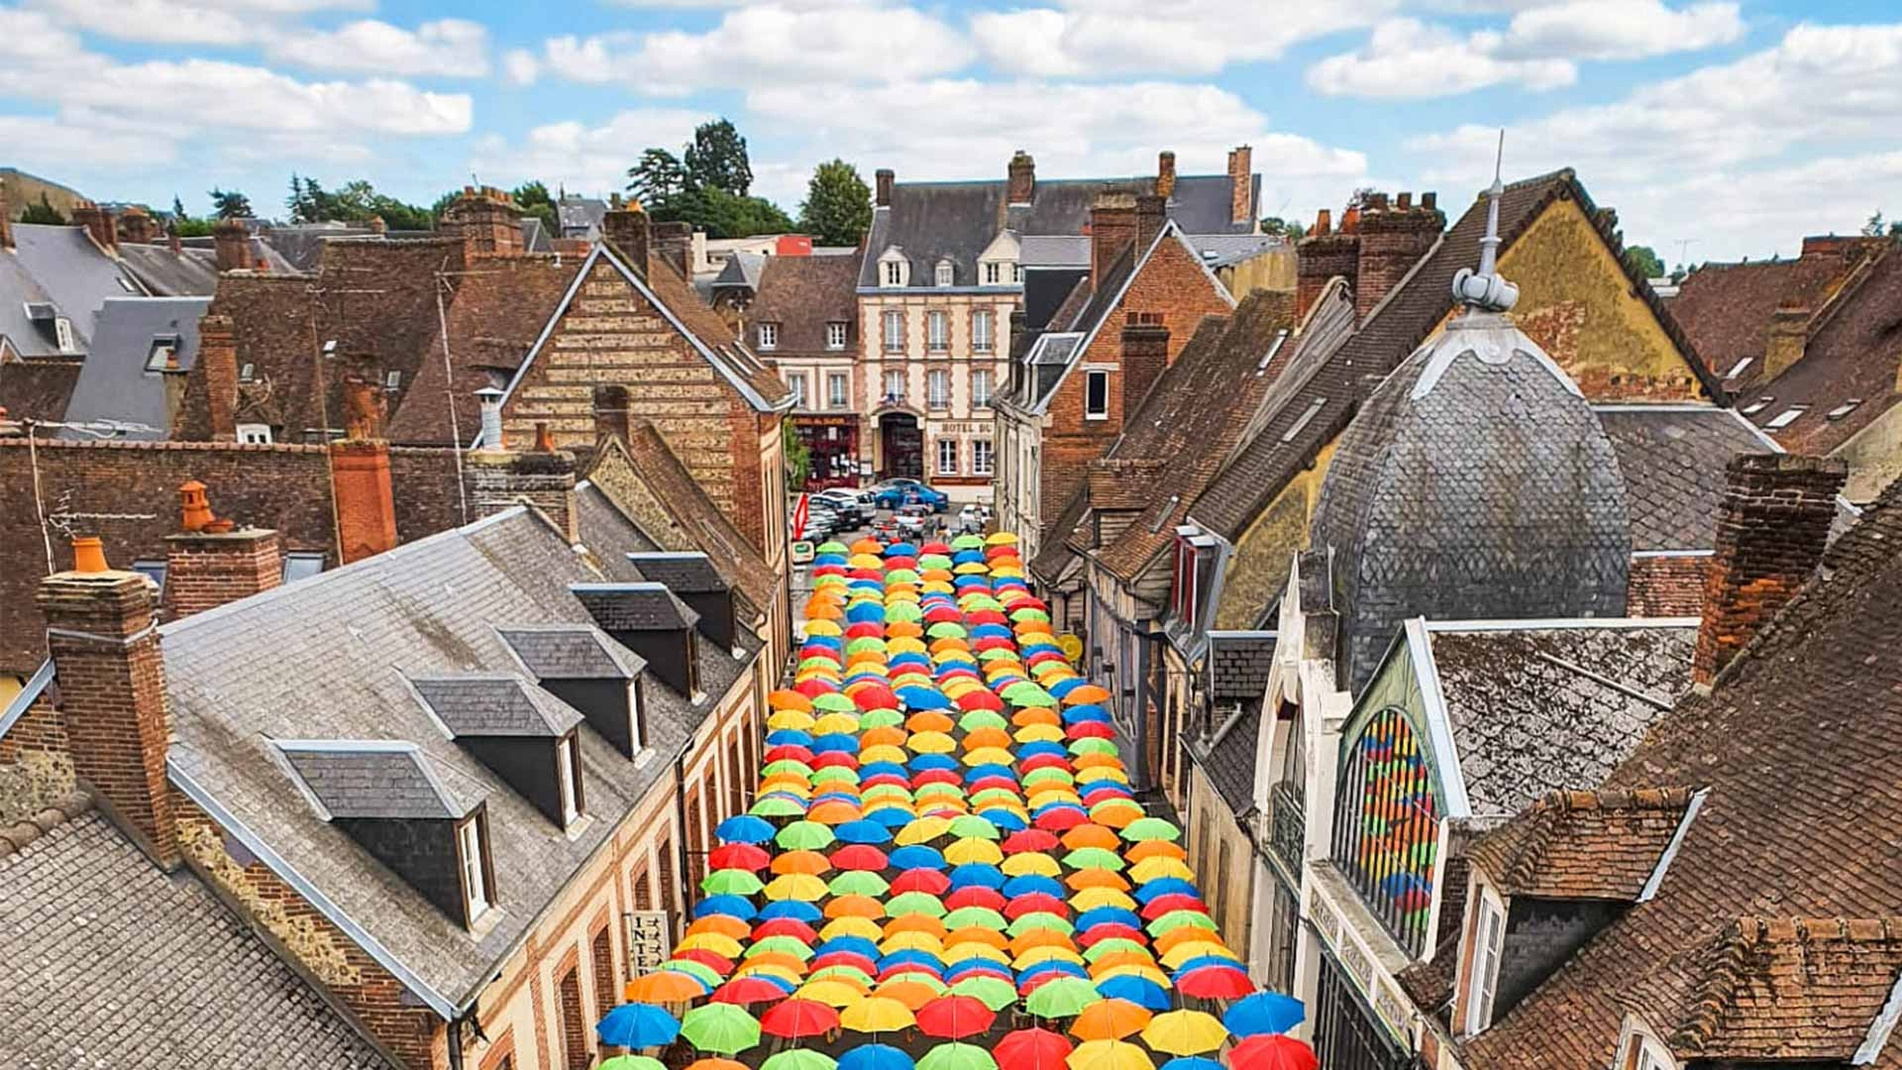 Umbrella Sky Project - L'Aigle'20